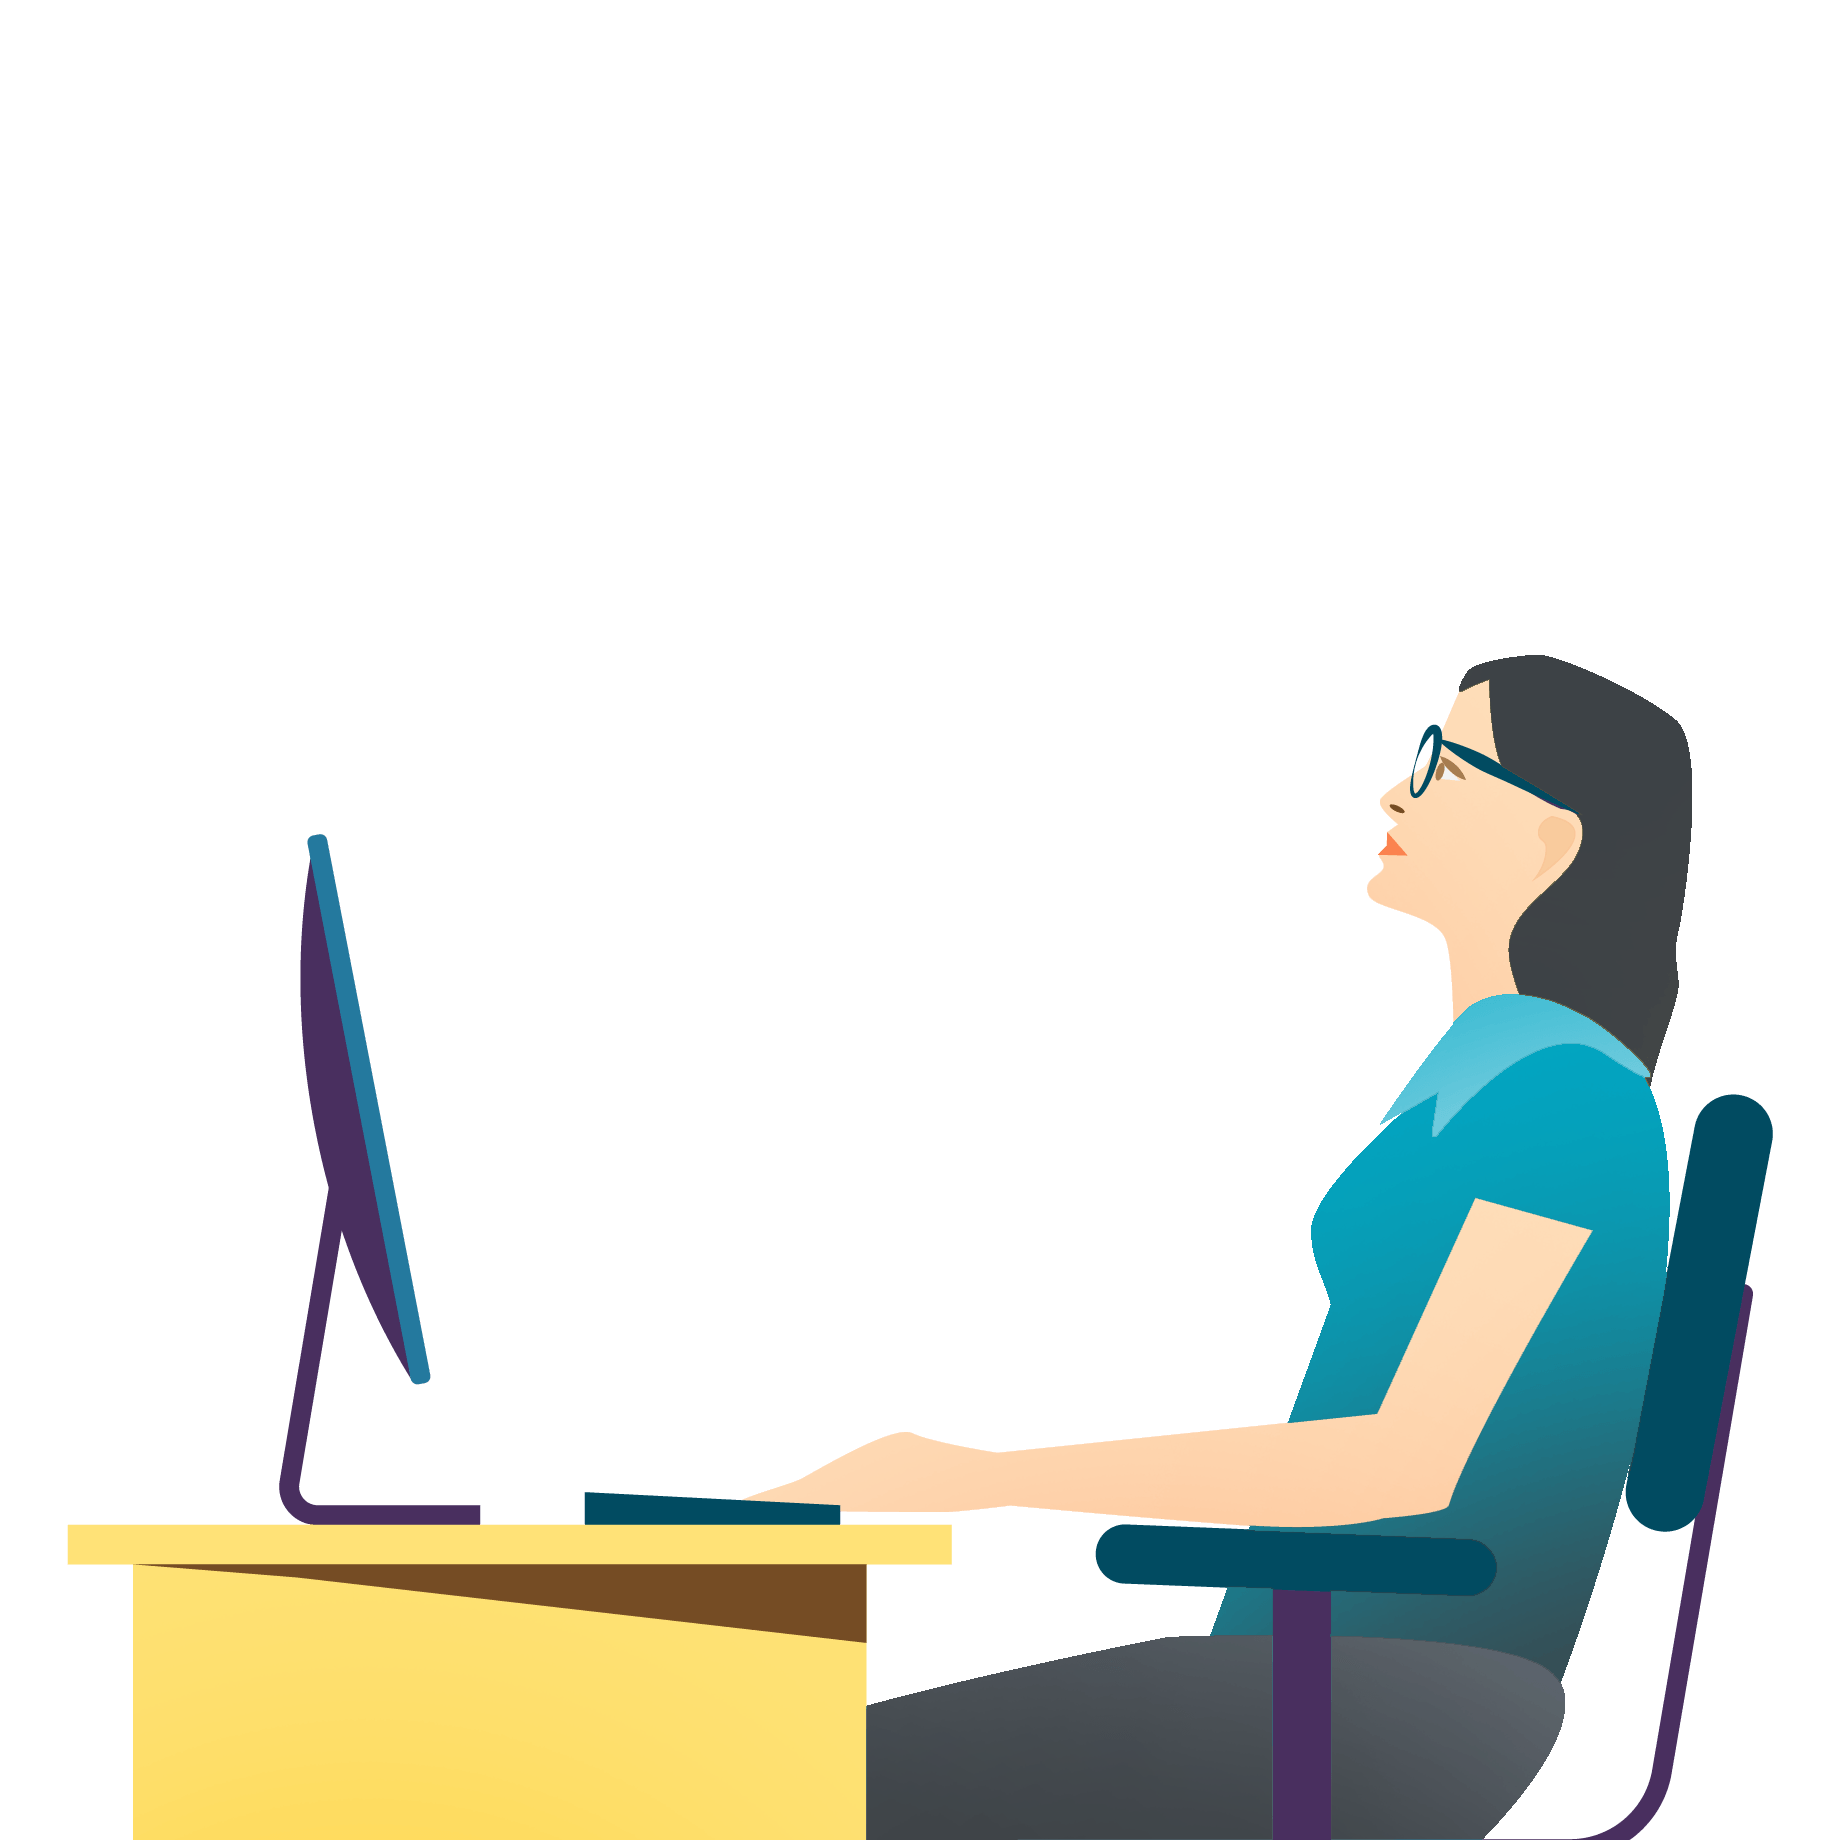 A woman with standard progressive lenses with improper posture working on a computer